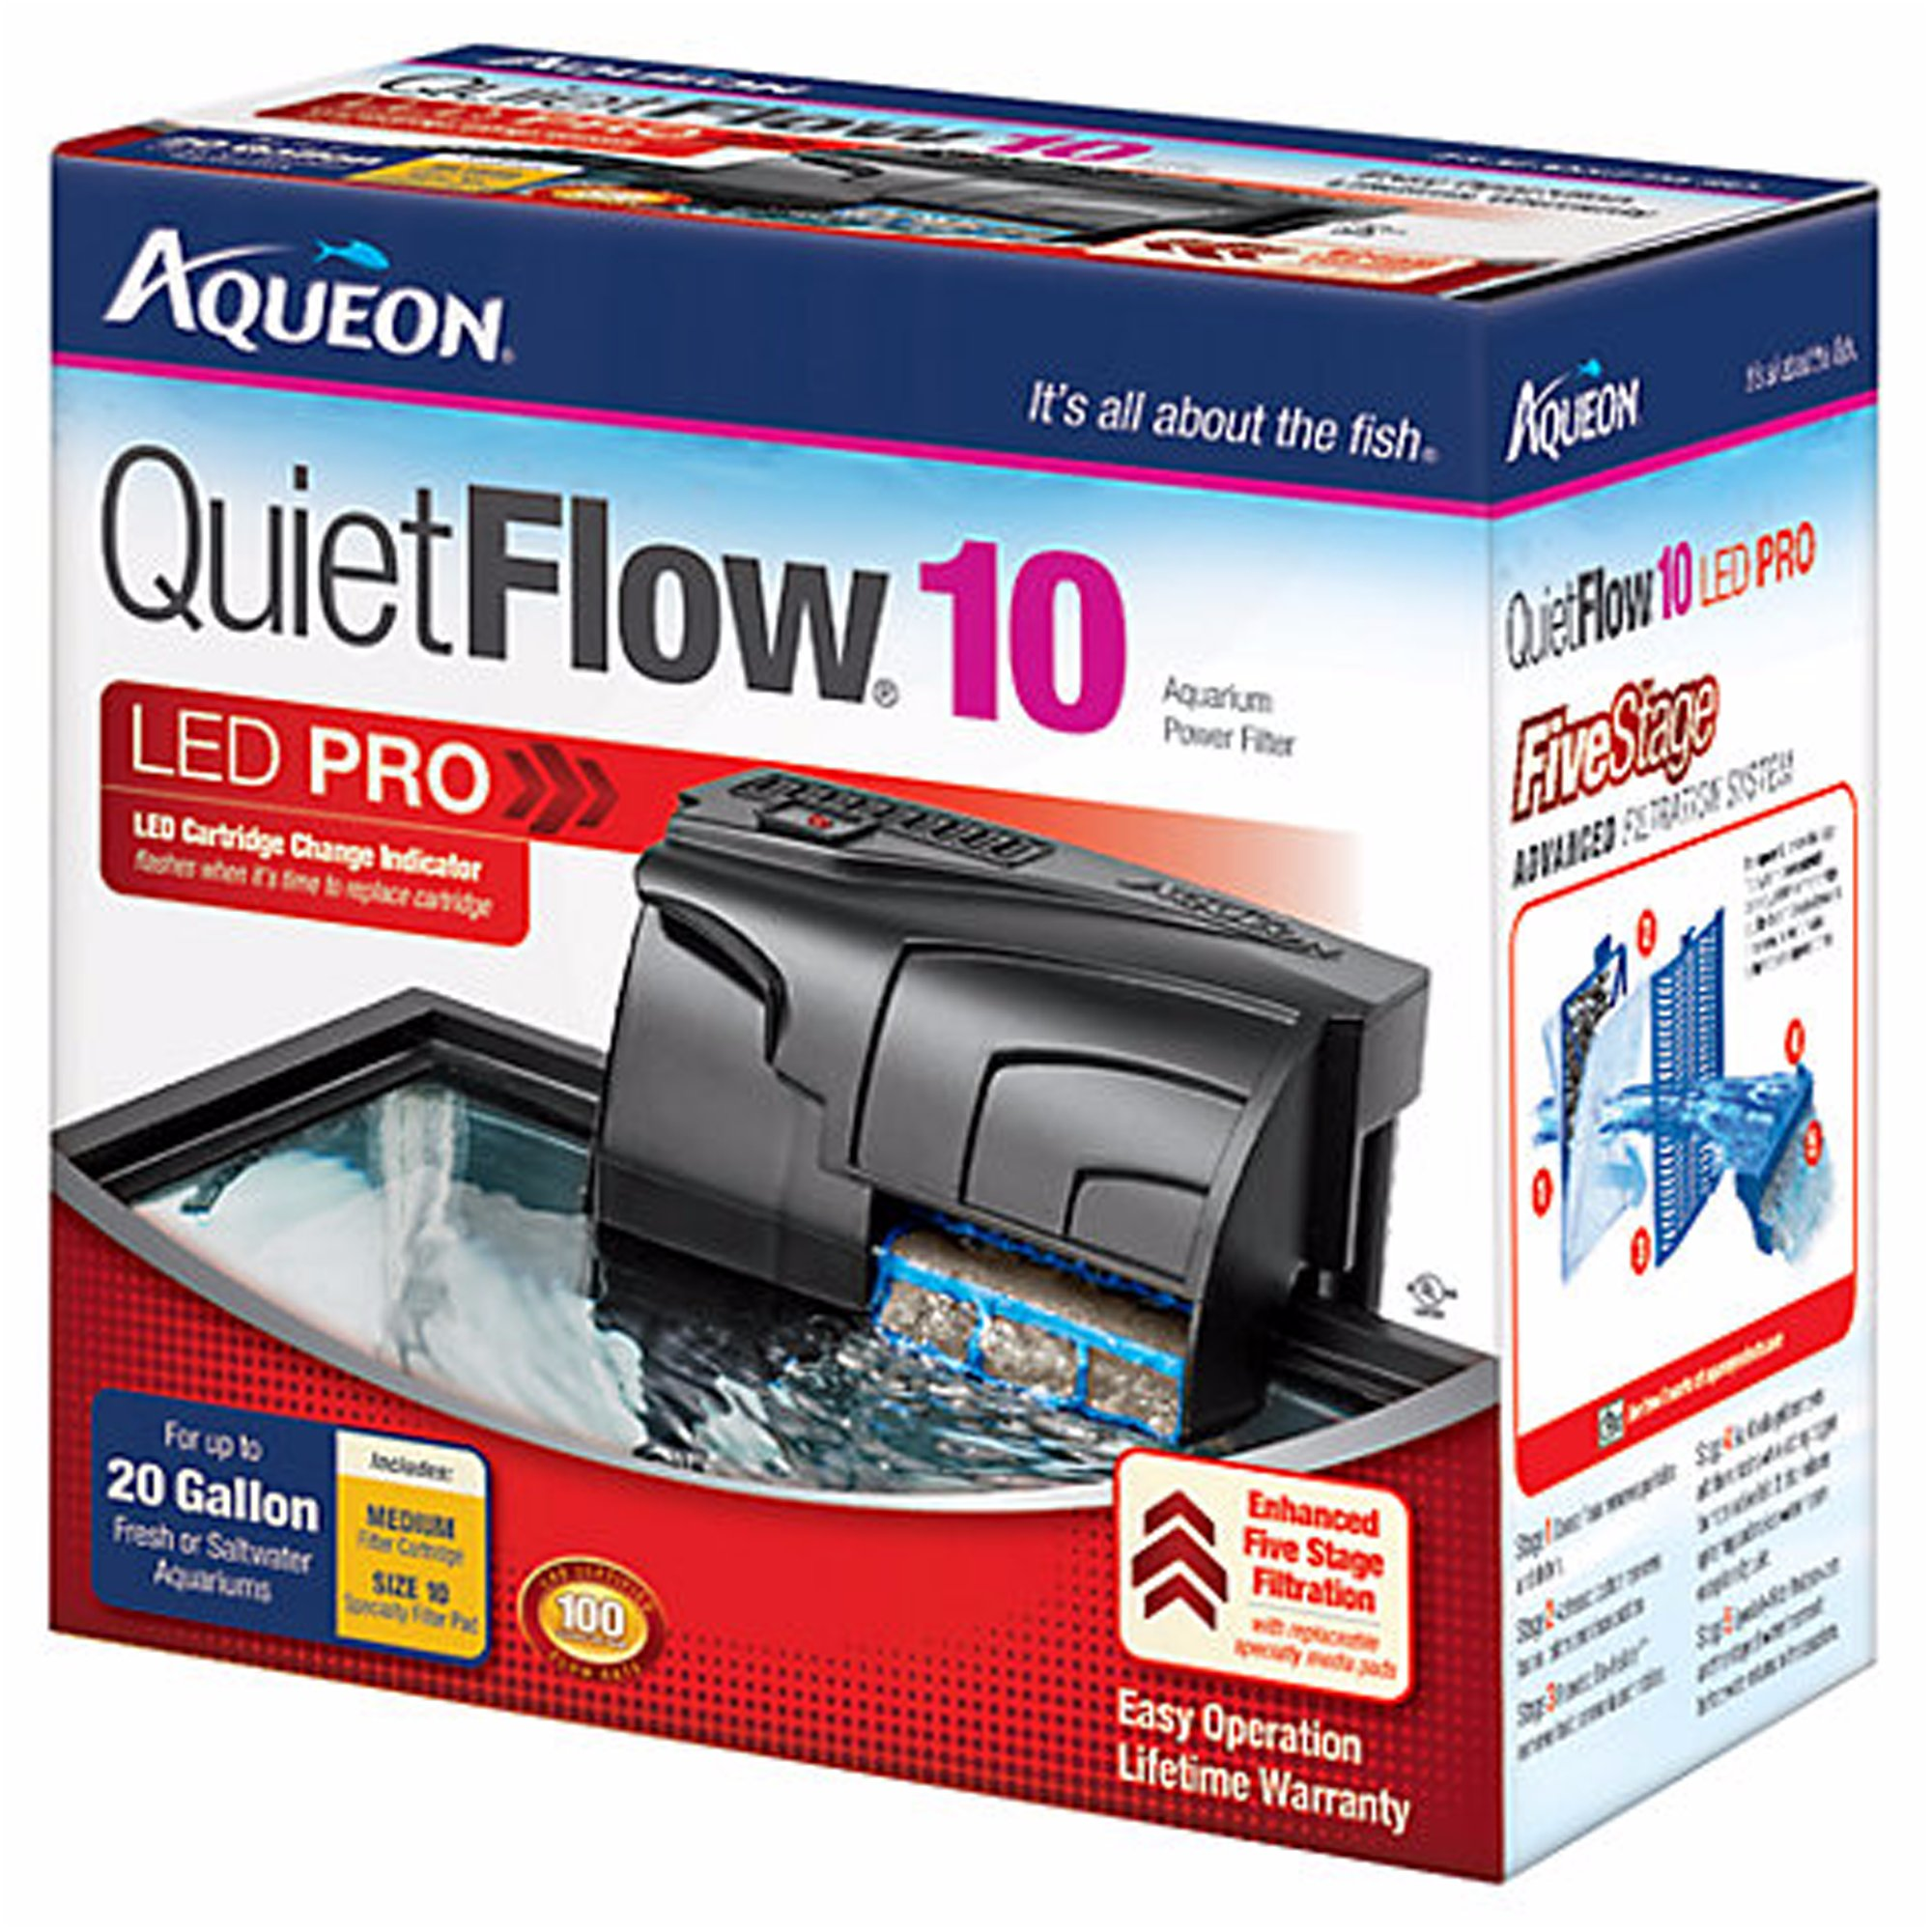 Aqueon quietflow 10 aquarium power filter petco for Petco fish tank filters